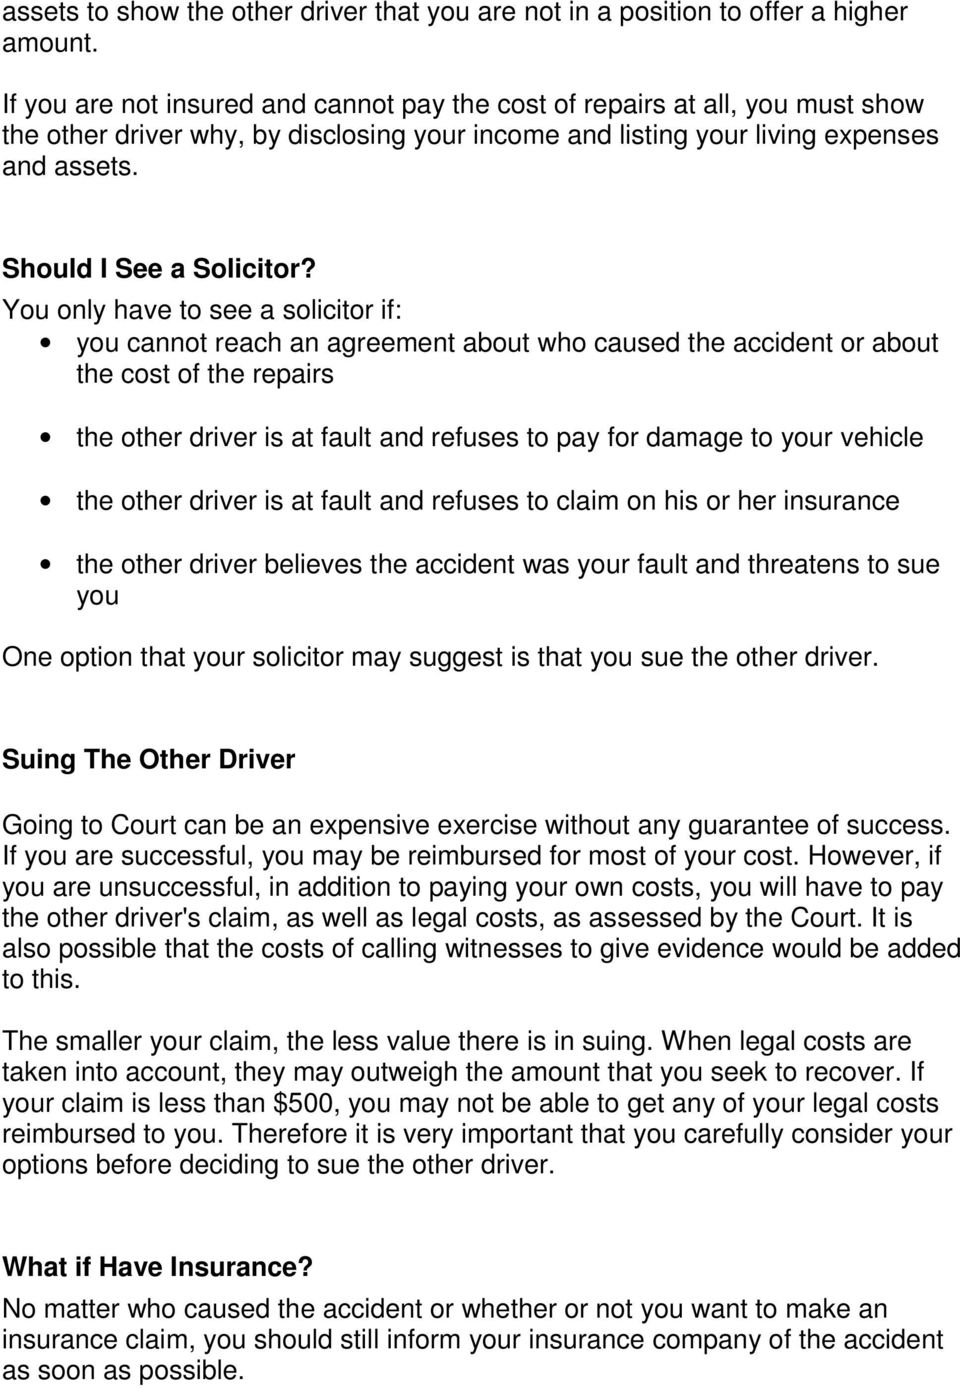 You only have to see a solicitor if: you cannot reach an agreement about who caused the accident or about the cost of the repairs the other driver is at fault and refuses to pay for damage to your